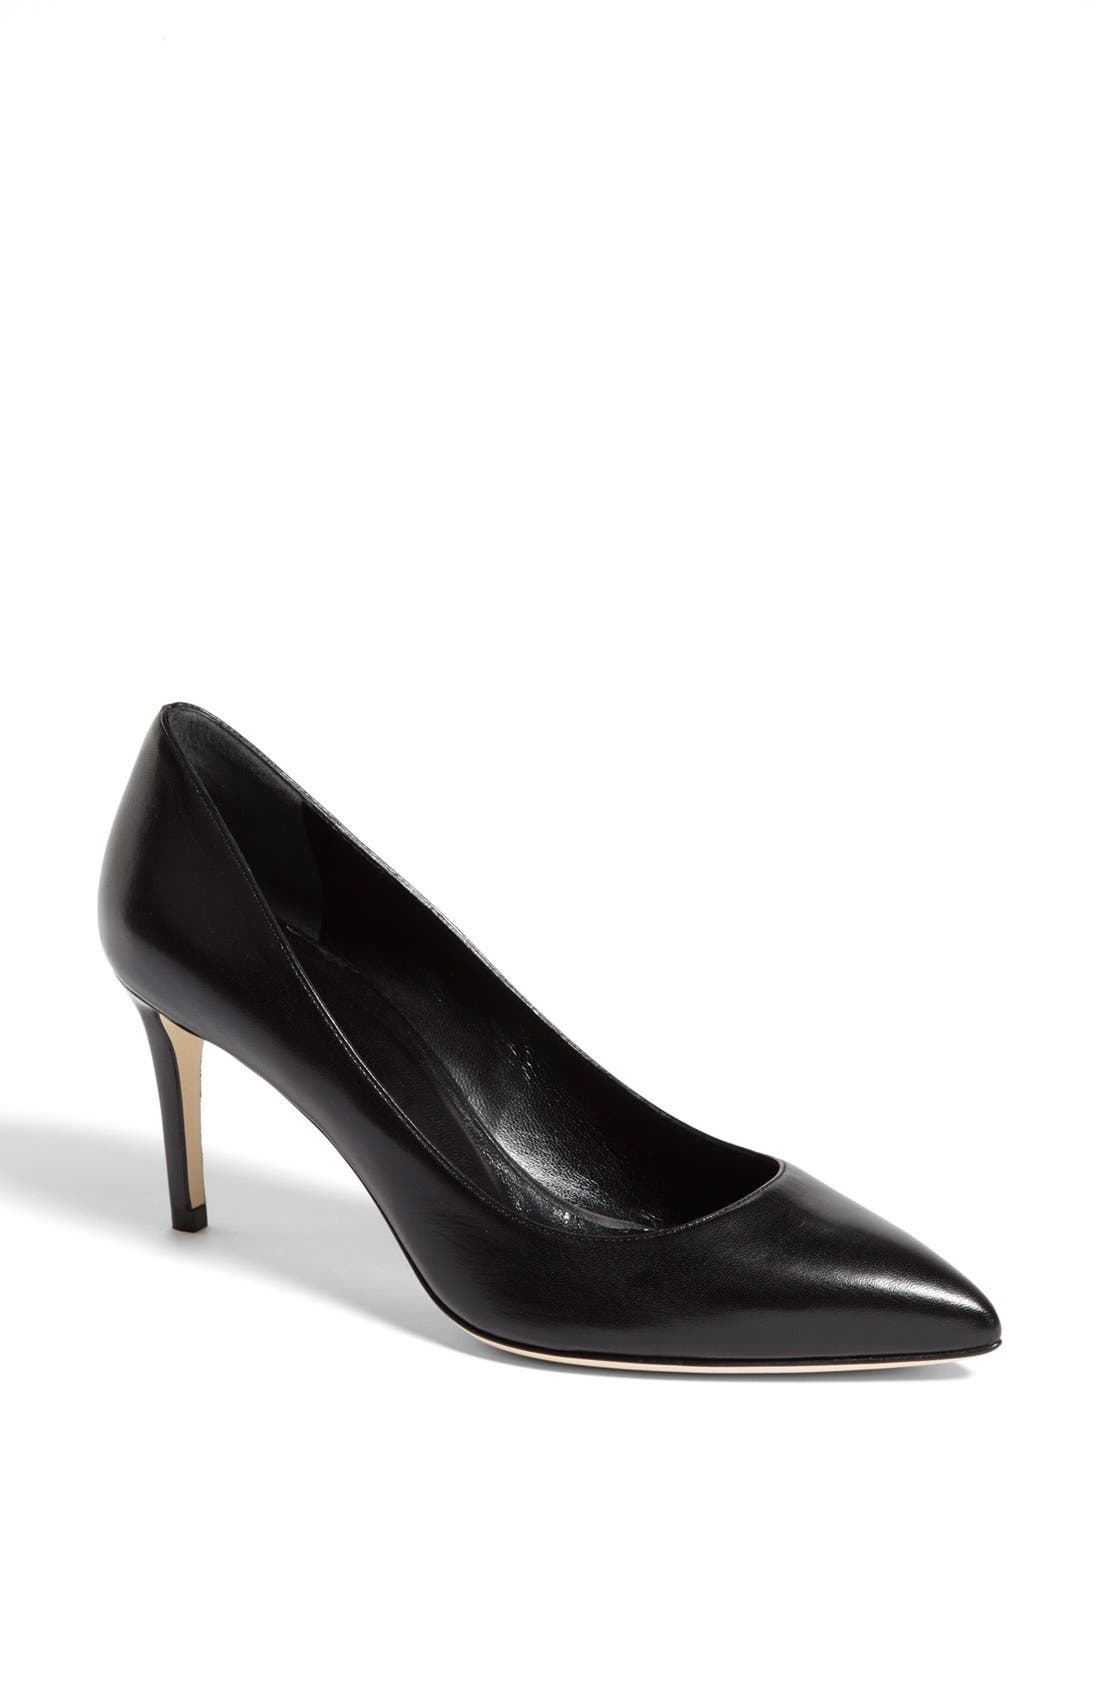 Main Image - Gucci 'Brooke' Pointed Toe Pump